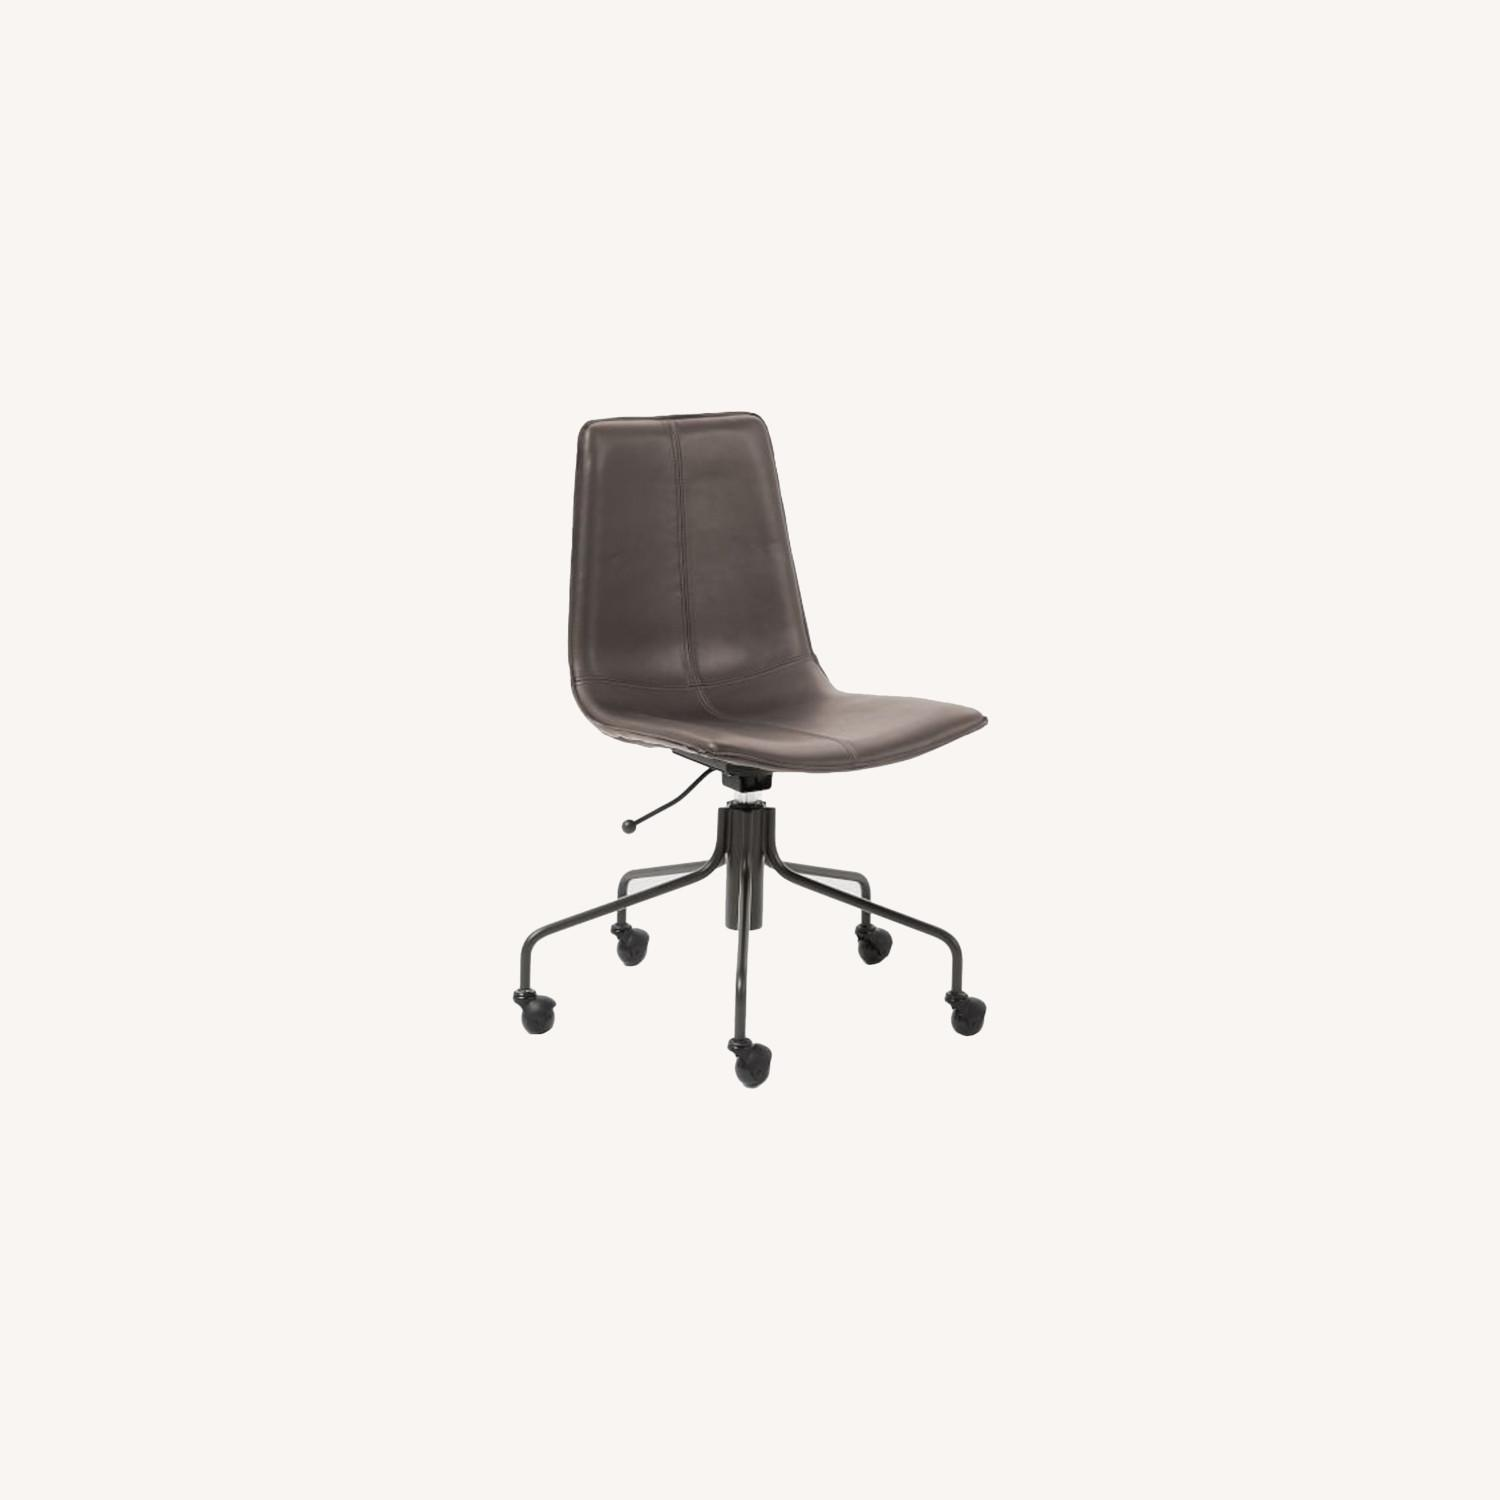 West Elm Slope Office Chair, Charcoal - image-4